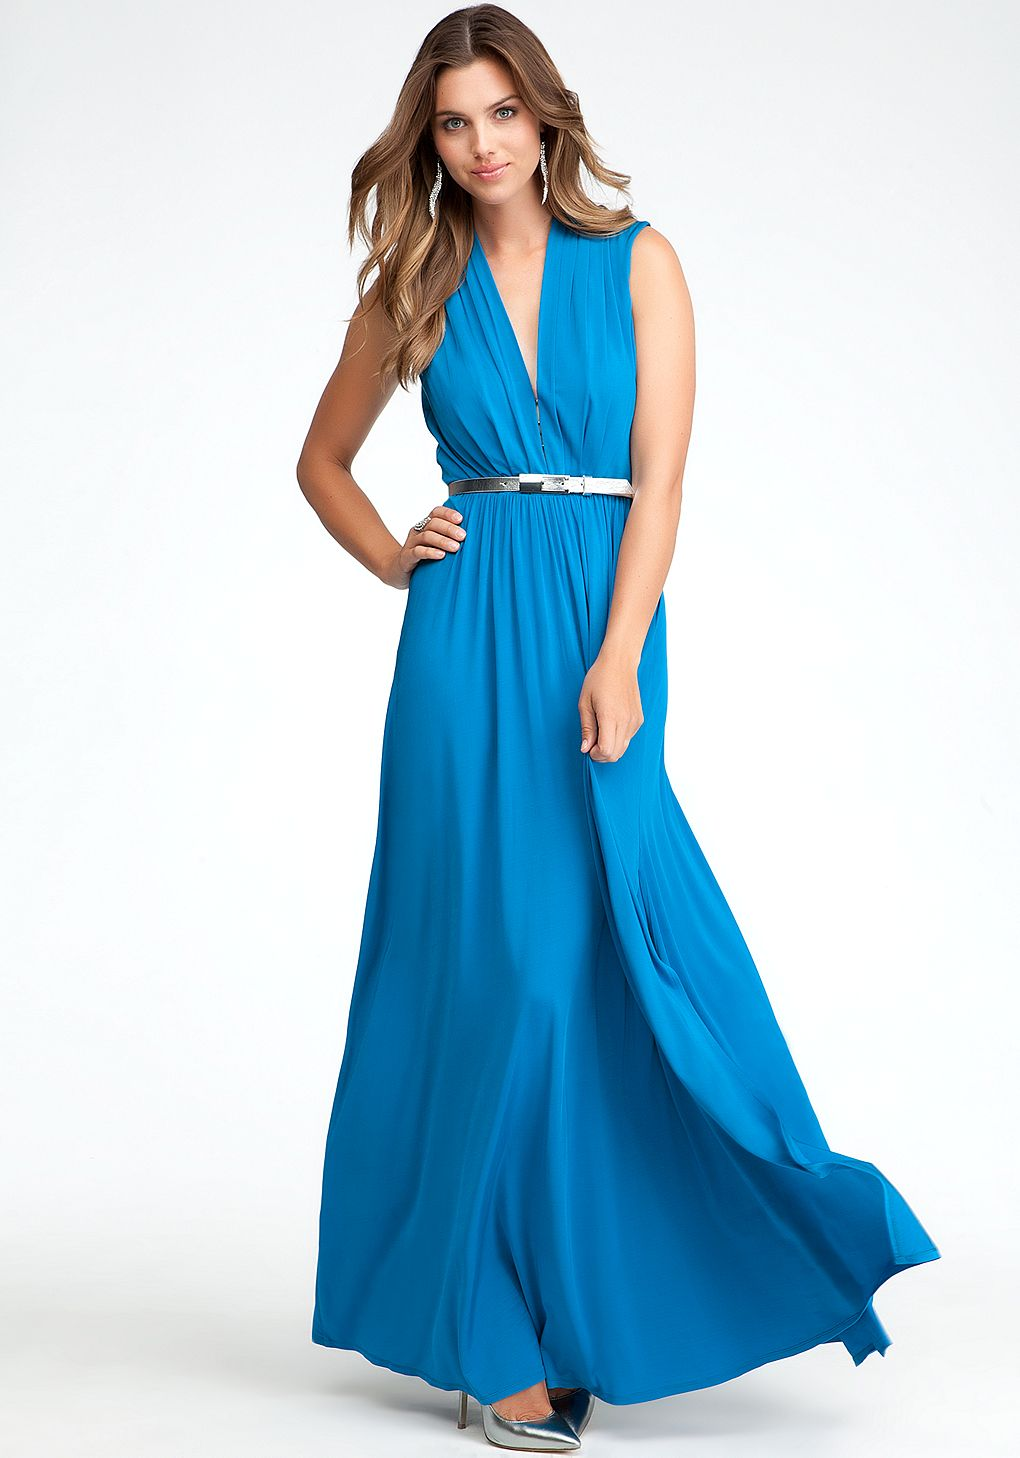 bebe | Deep V-Neck Maxi Dress - ONLINE EXCLUSIVE - View All | My ...